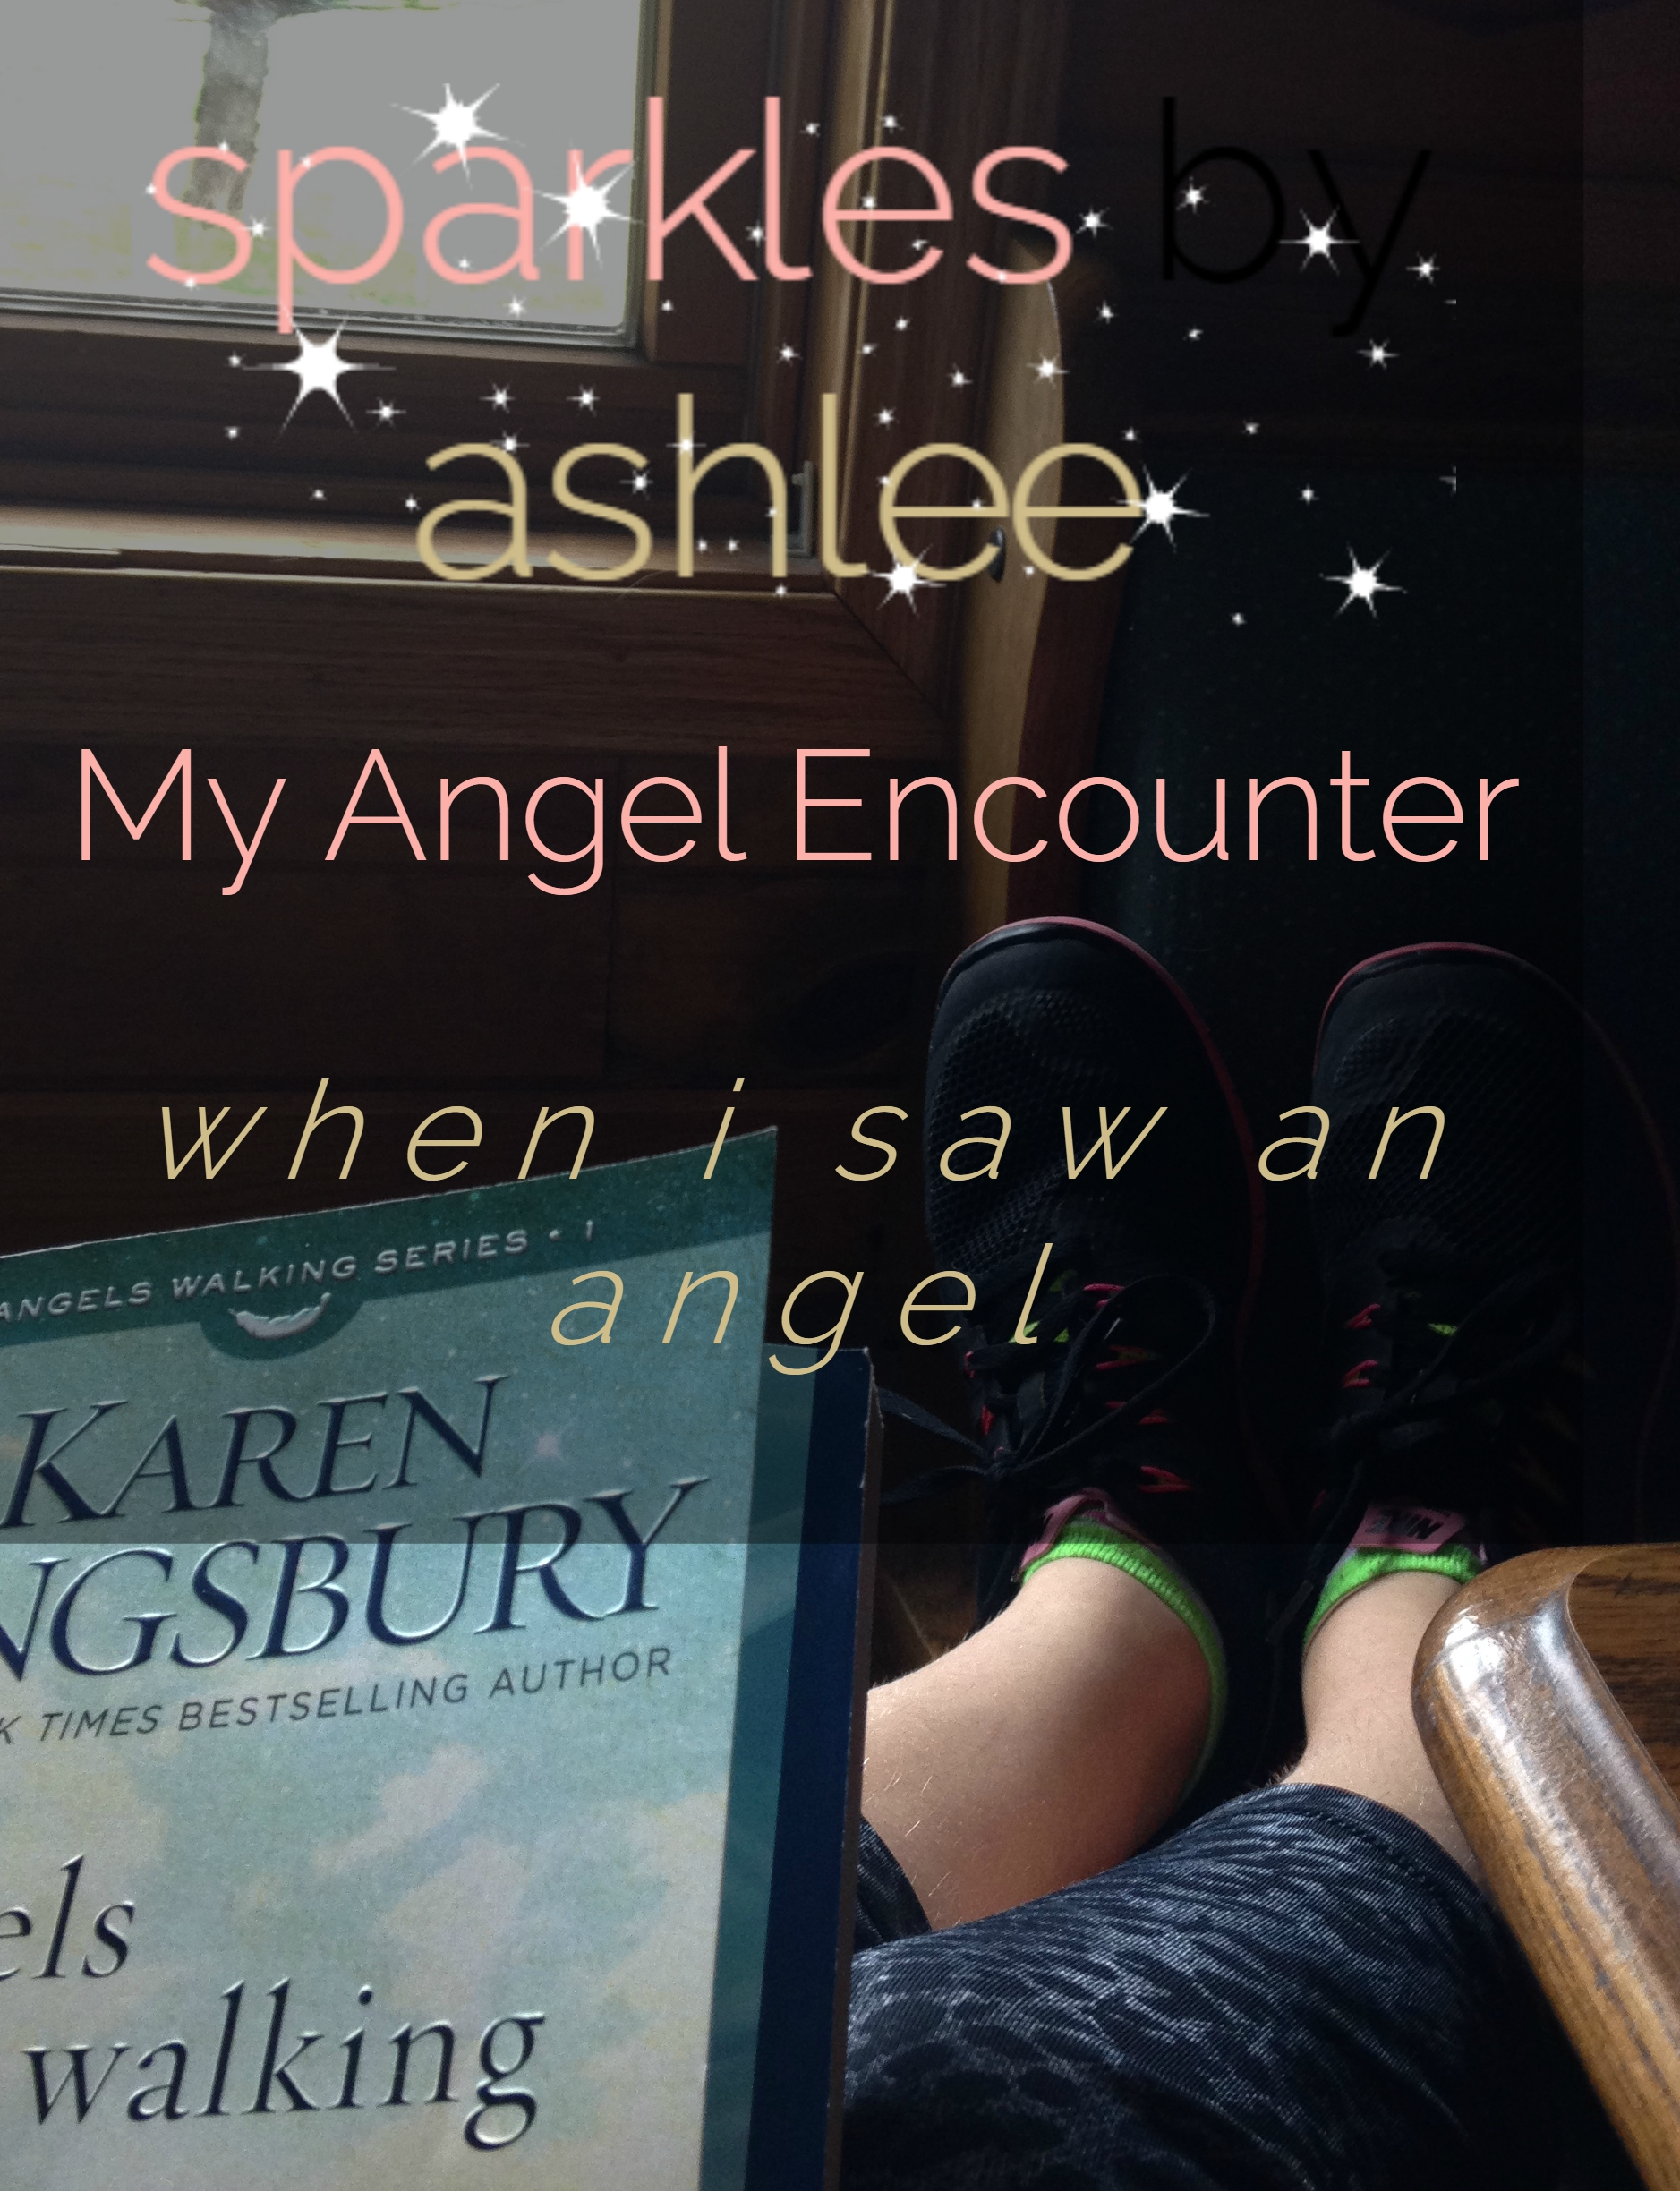 My-Angel-Encounter-Sparkles-by-Ashlee.jpg